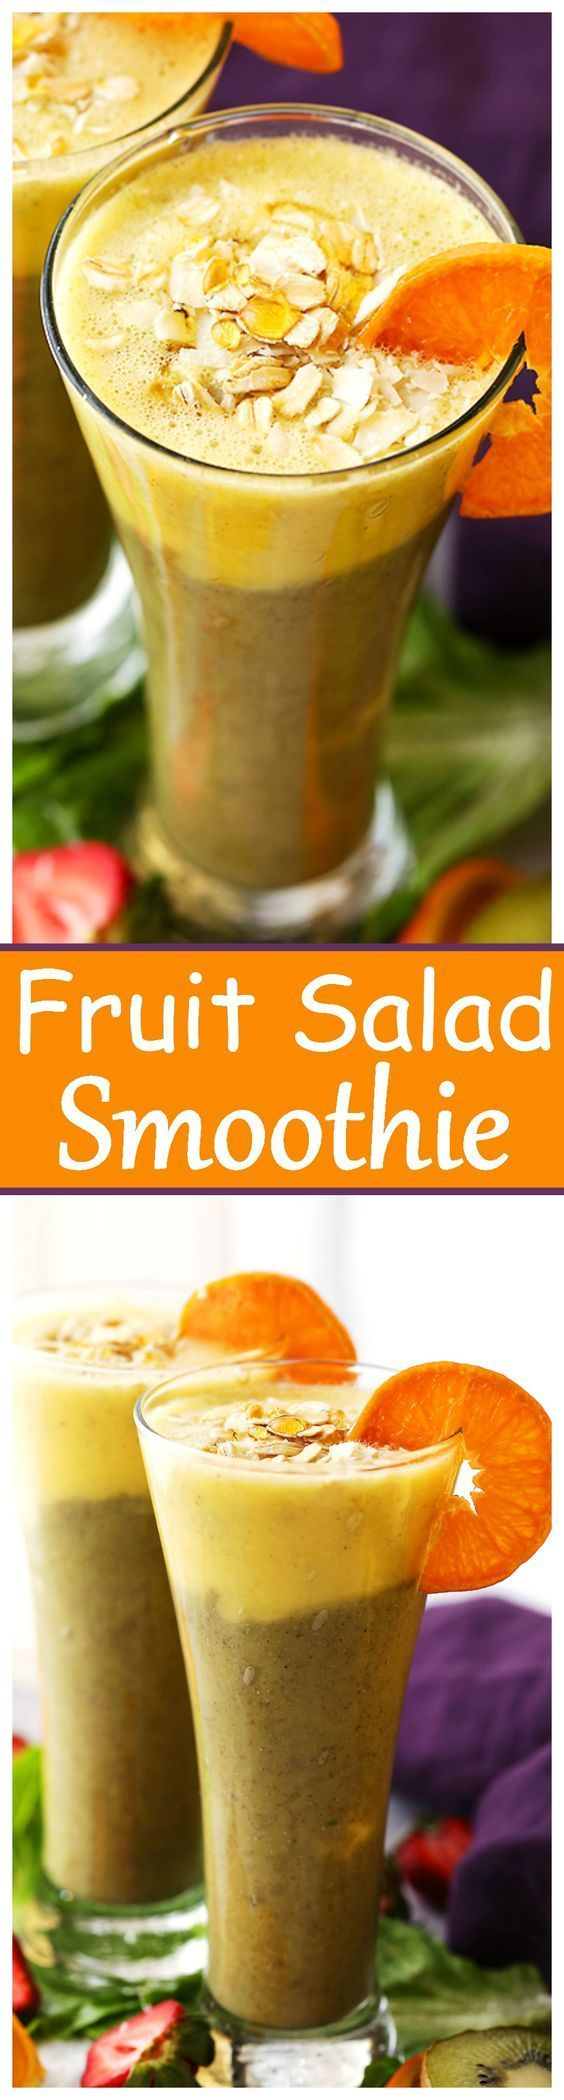 fruit salad song delicious healthy fruit smoothies